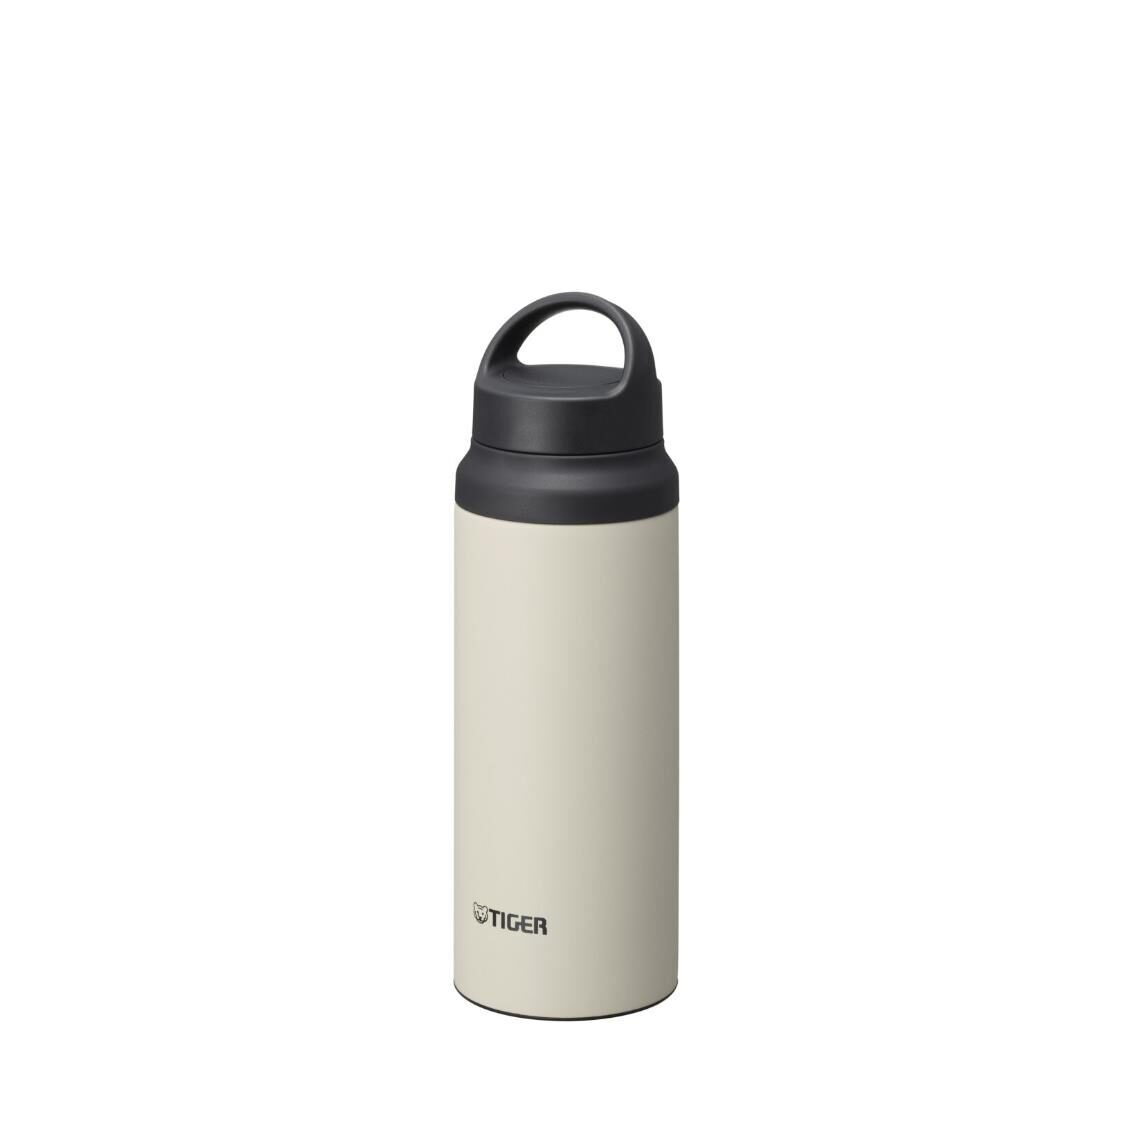 Tiger 600ml Double Stainless Steel Bottle - Arctic Wolf MCz-S060 Wz